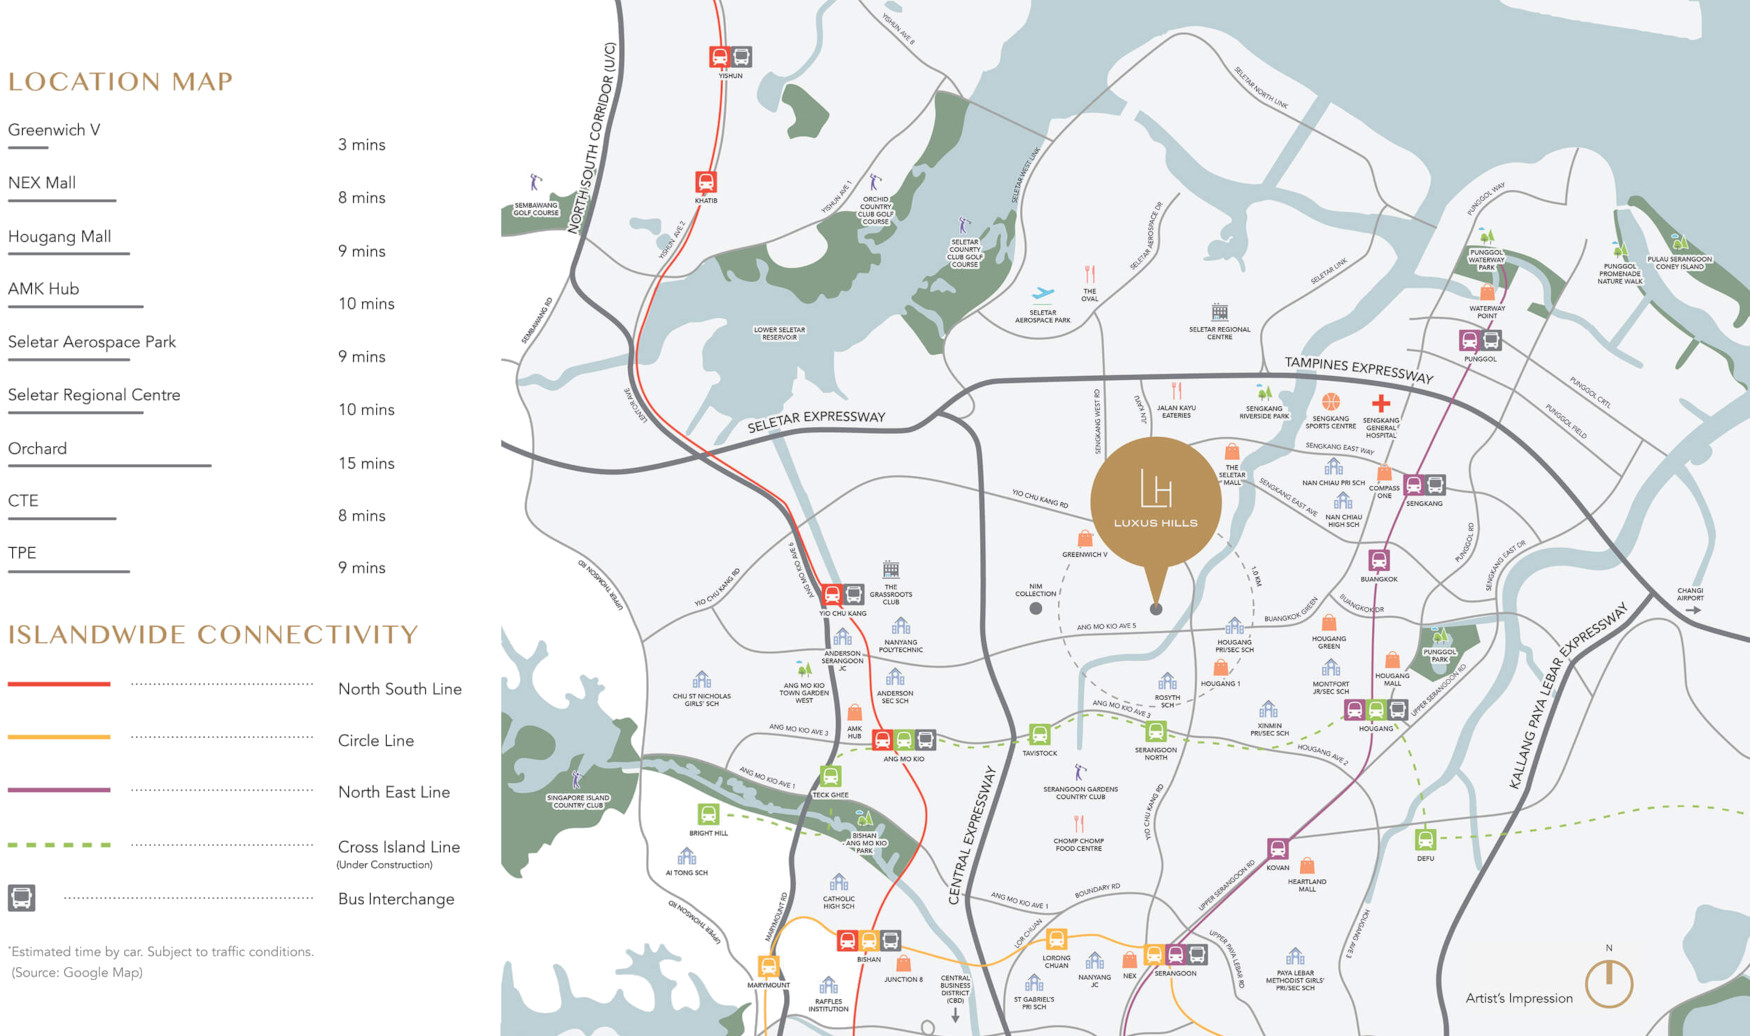 Luxus Hills Location Map . Amenities & Travel Distances